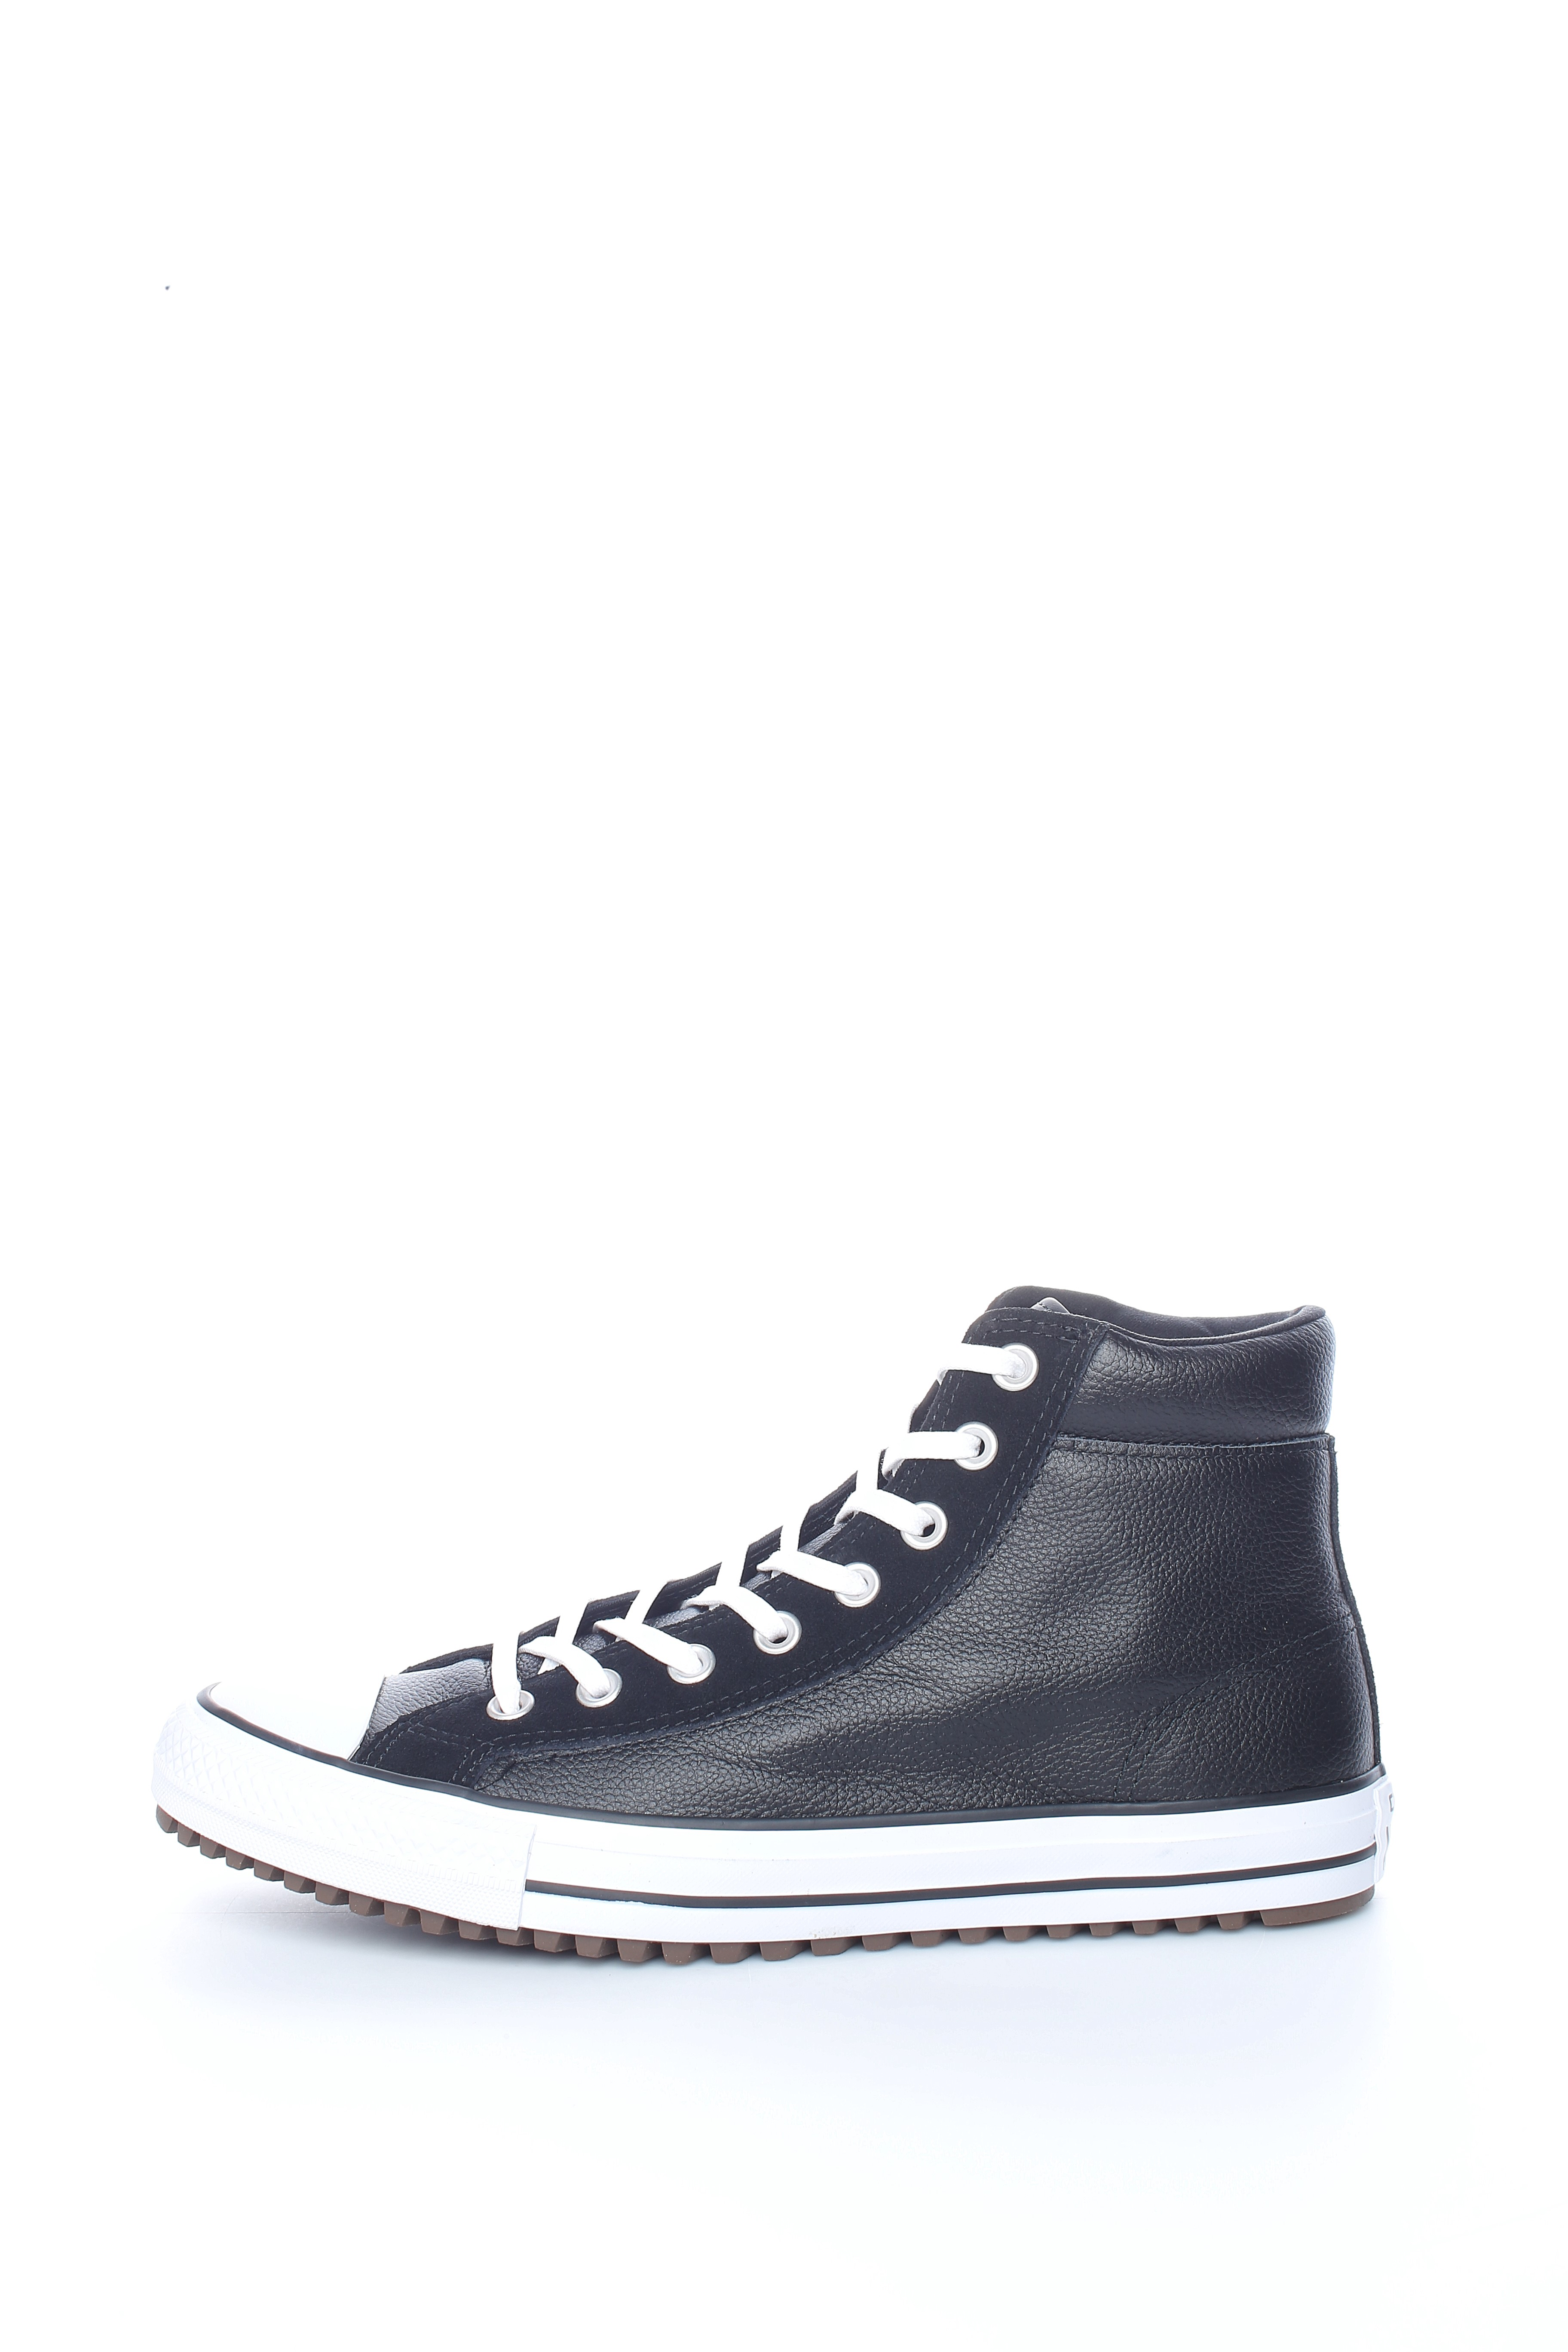 CONVERSE – Unisex ψηλά sneakers CONVERSE Chuck Taylor All Star Boot μαύρα